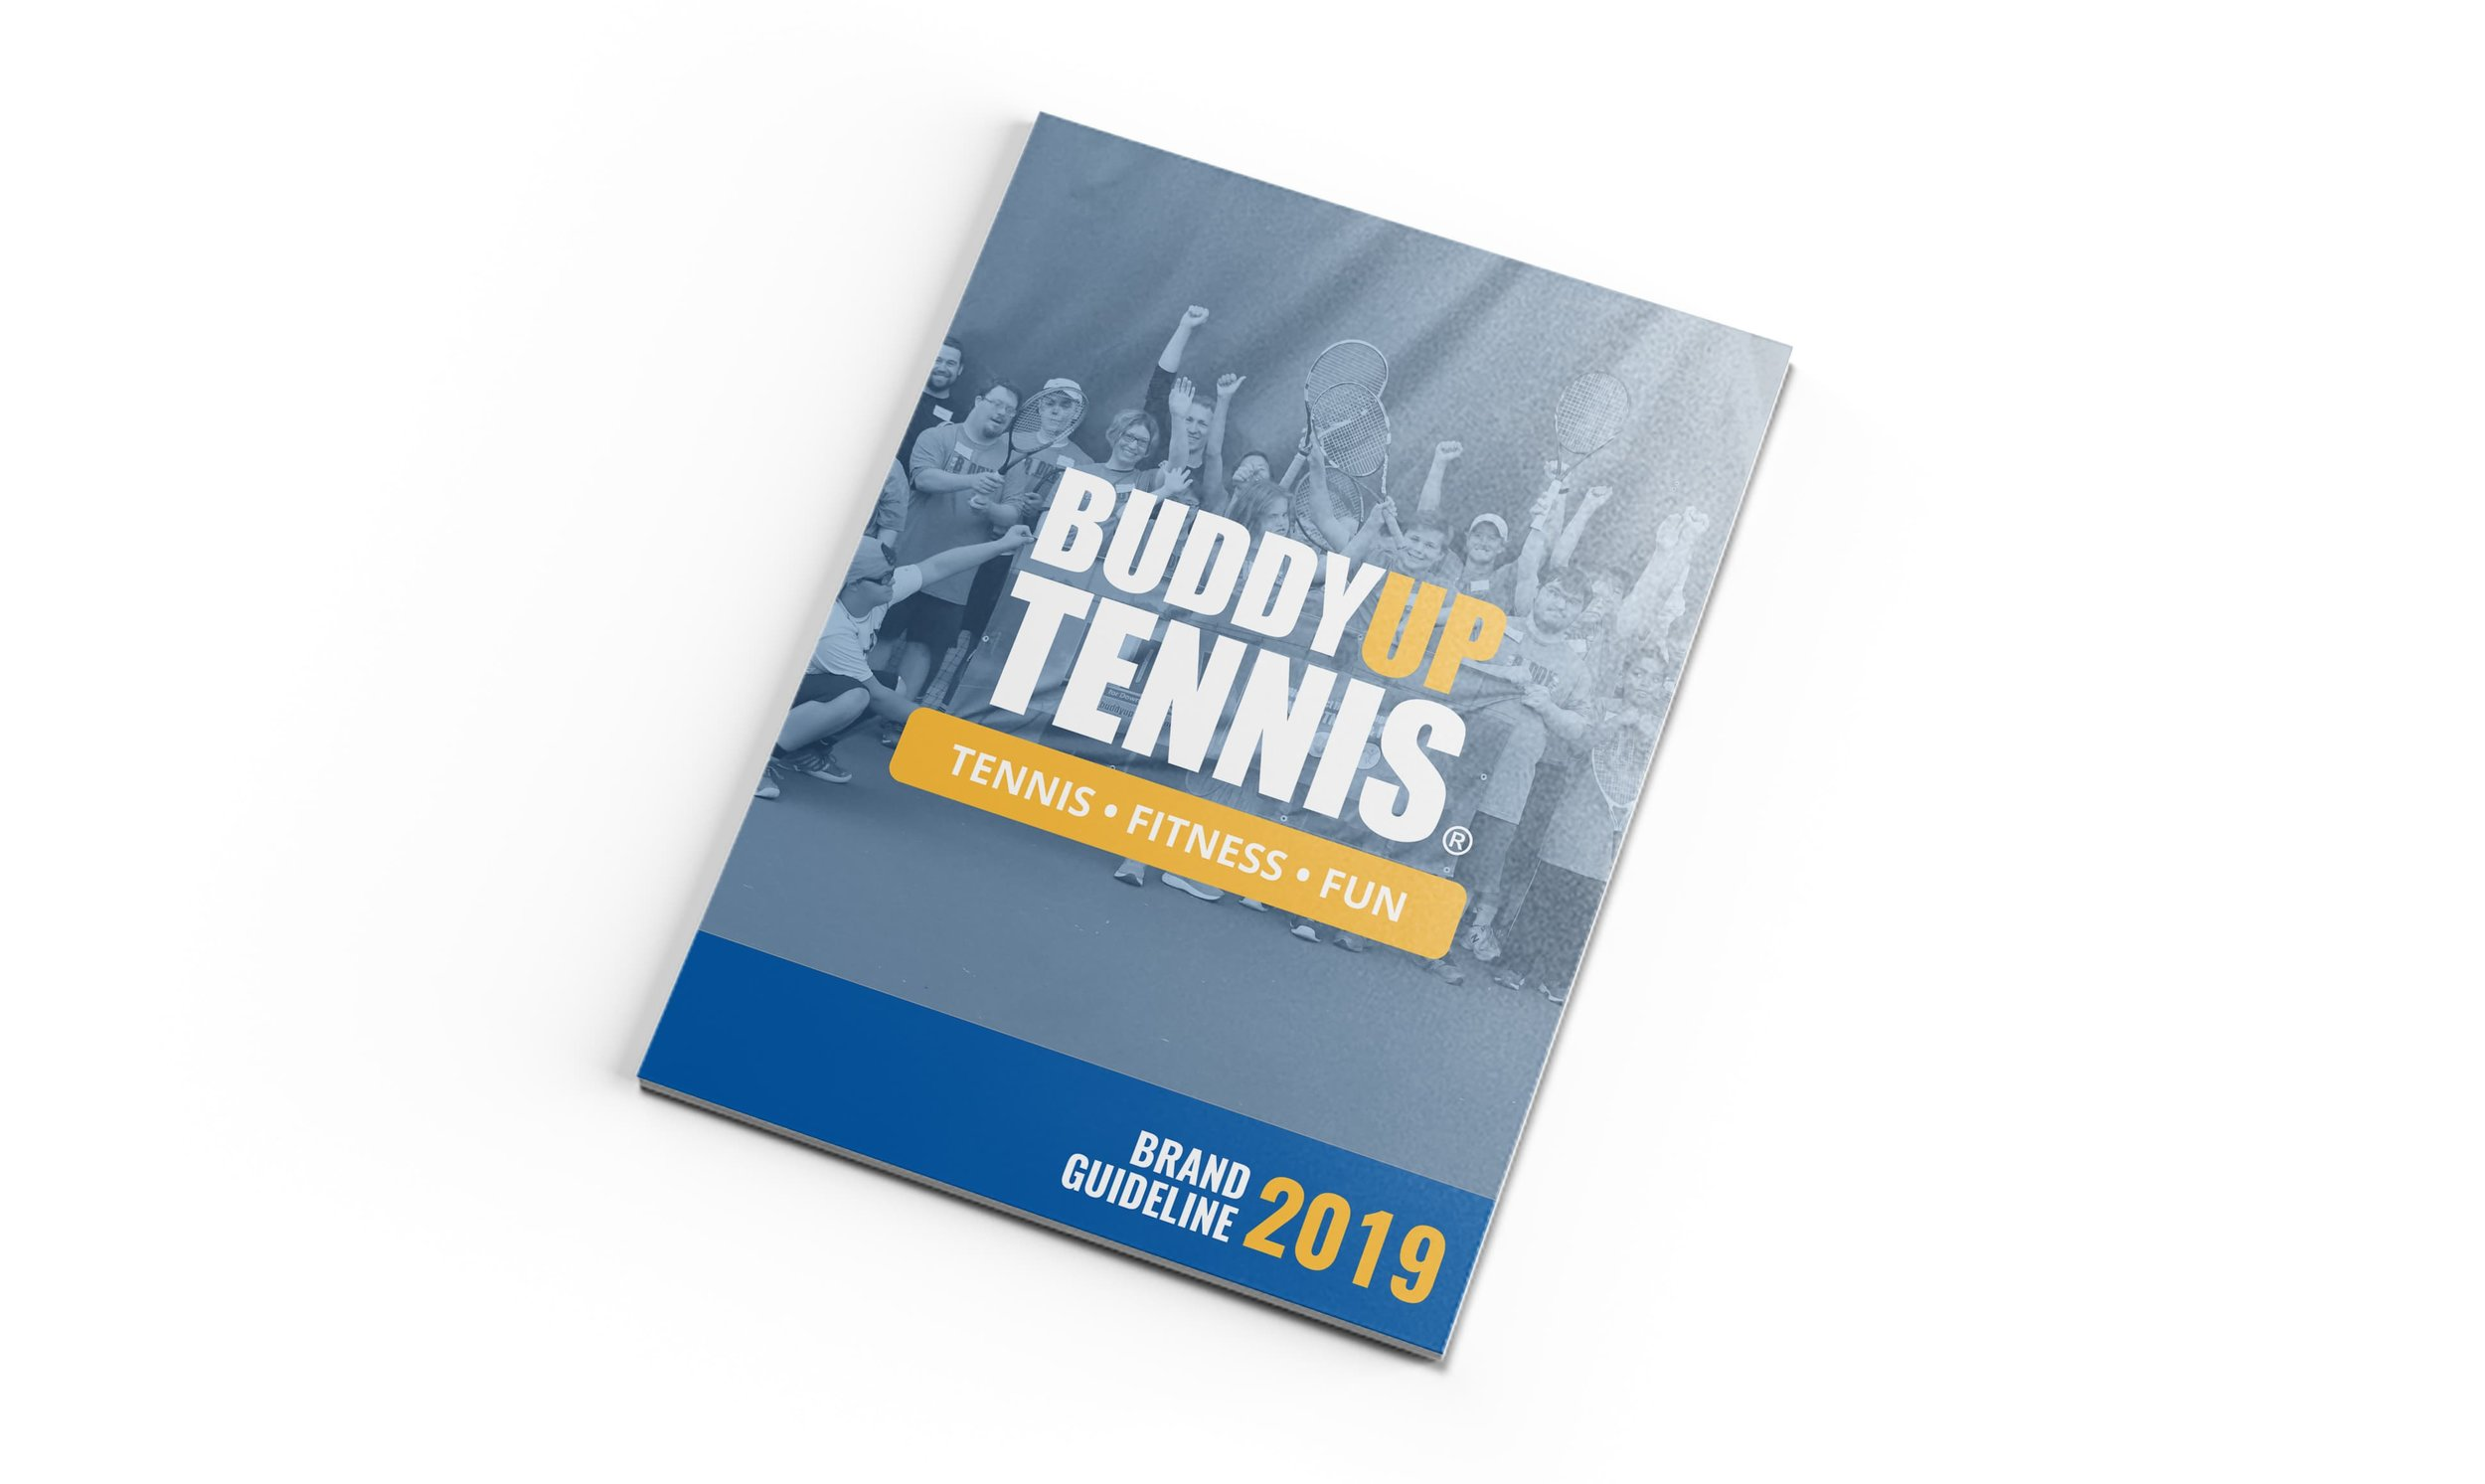 Buddy Up Tennis Brand Guide Mockup – COVER.jpg